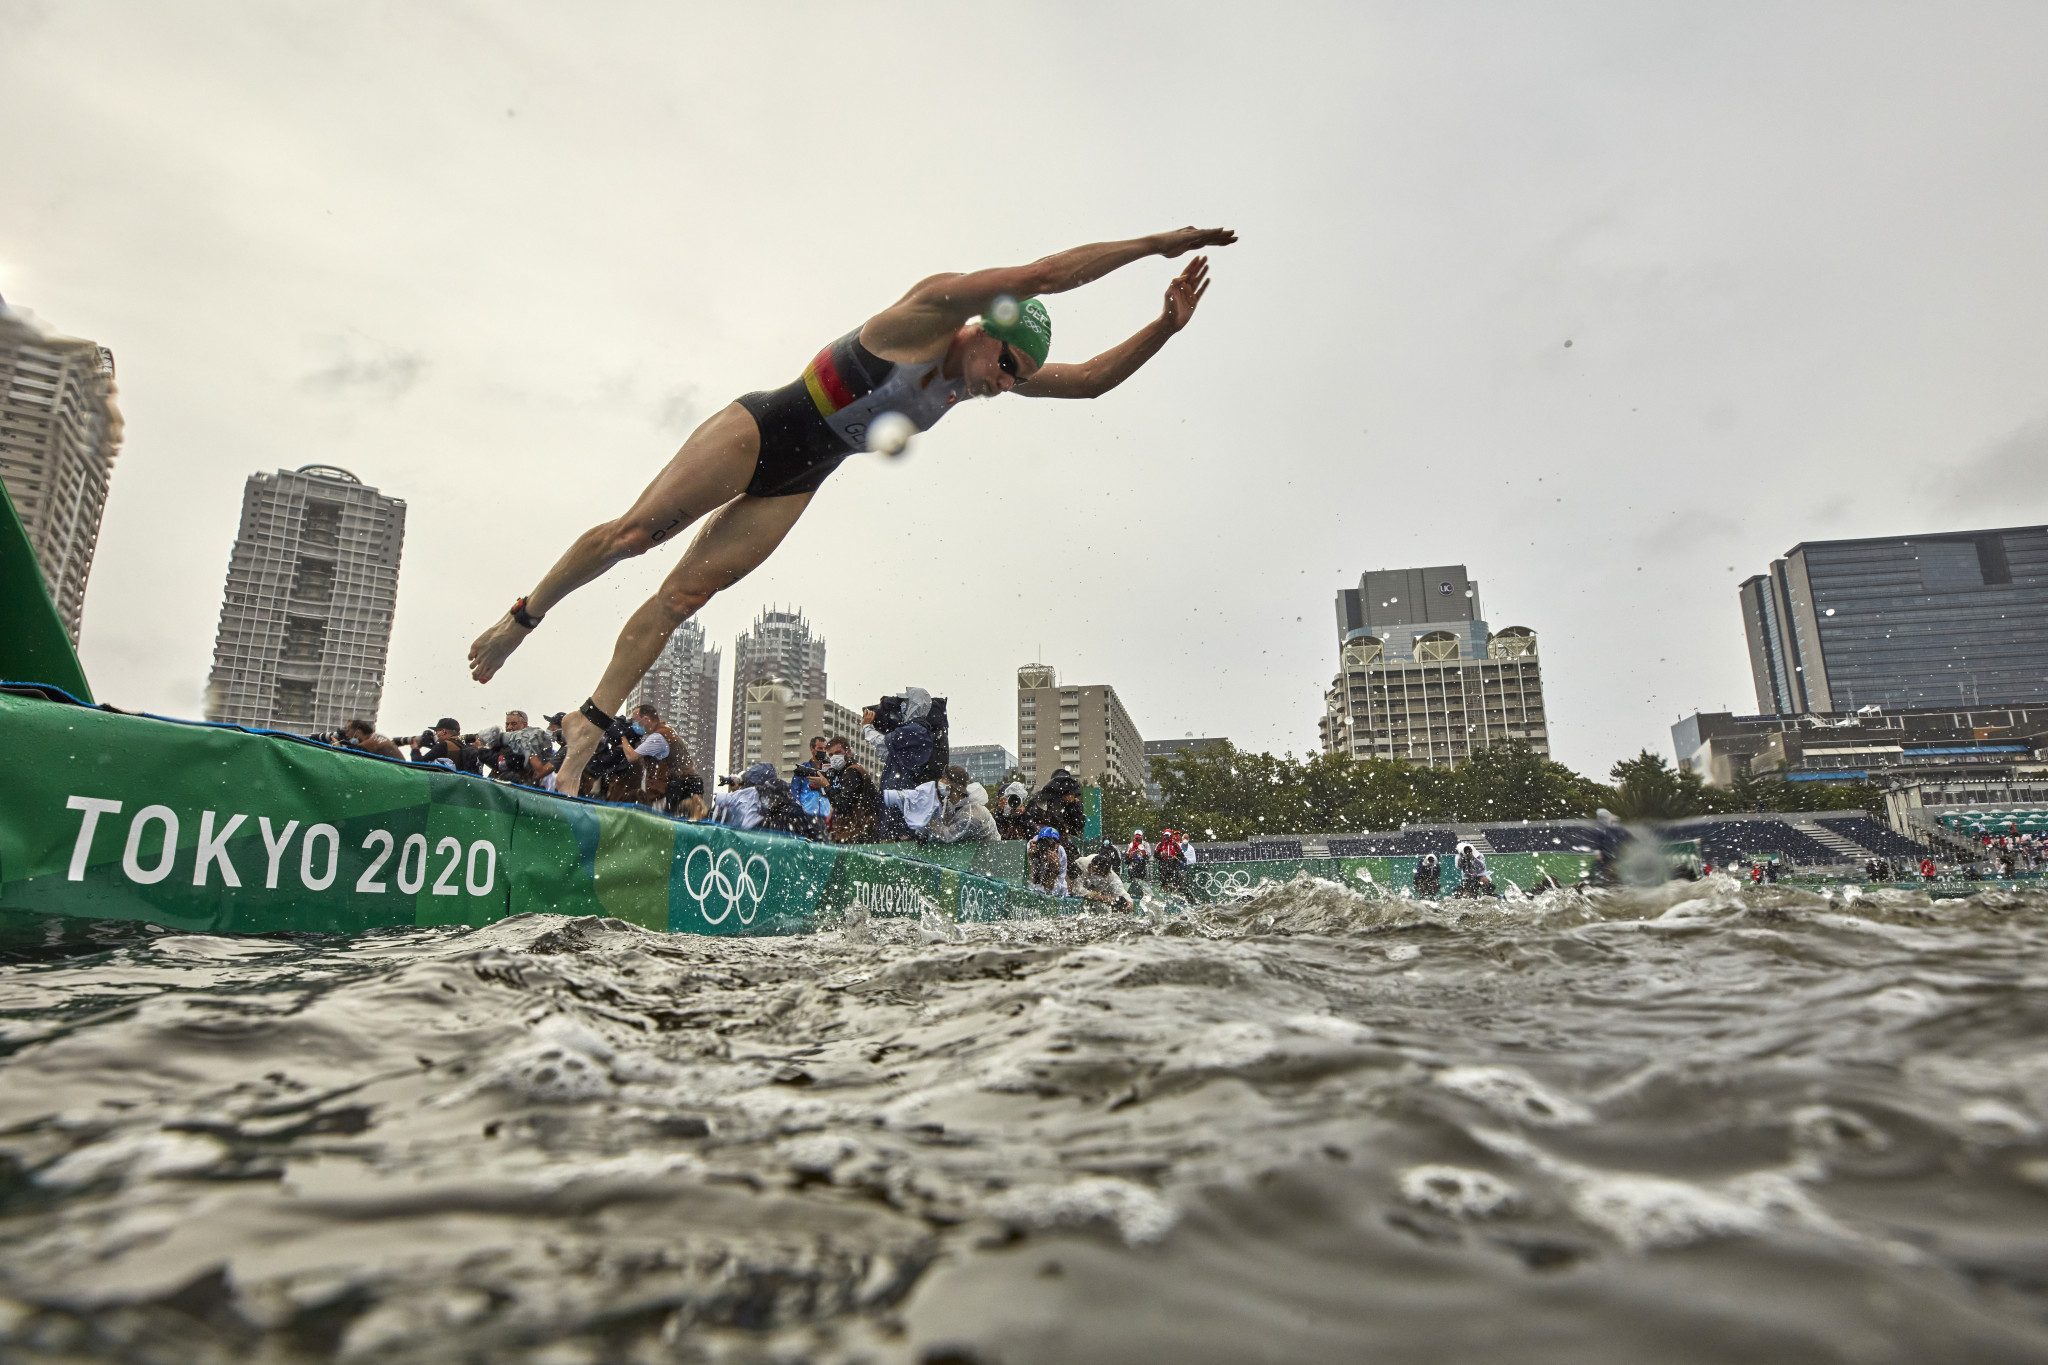 Jersey stages Super League Triathlon as Hamburg hosts youthful line-up in World Championship Series